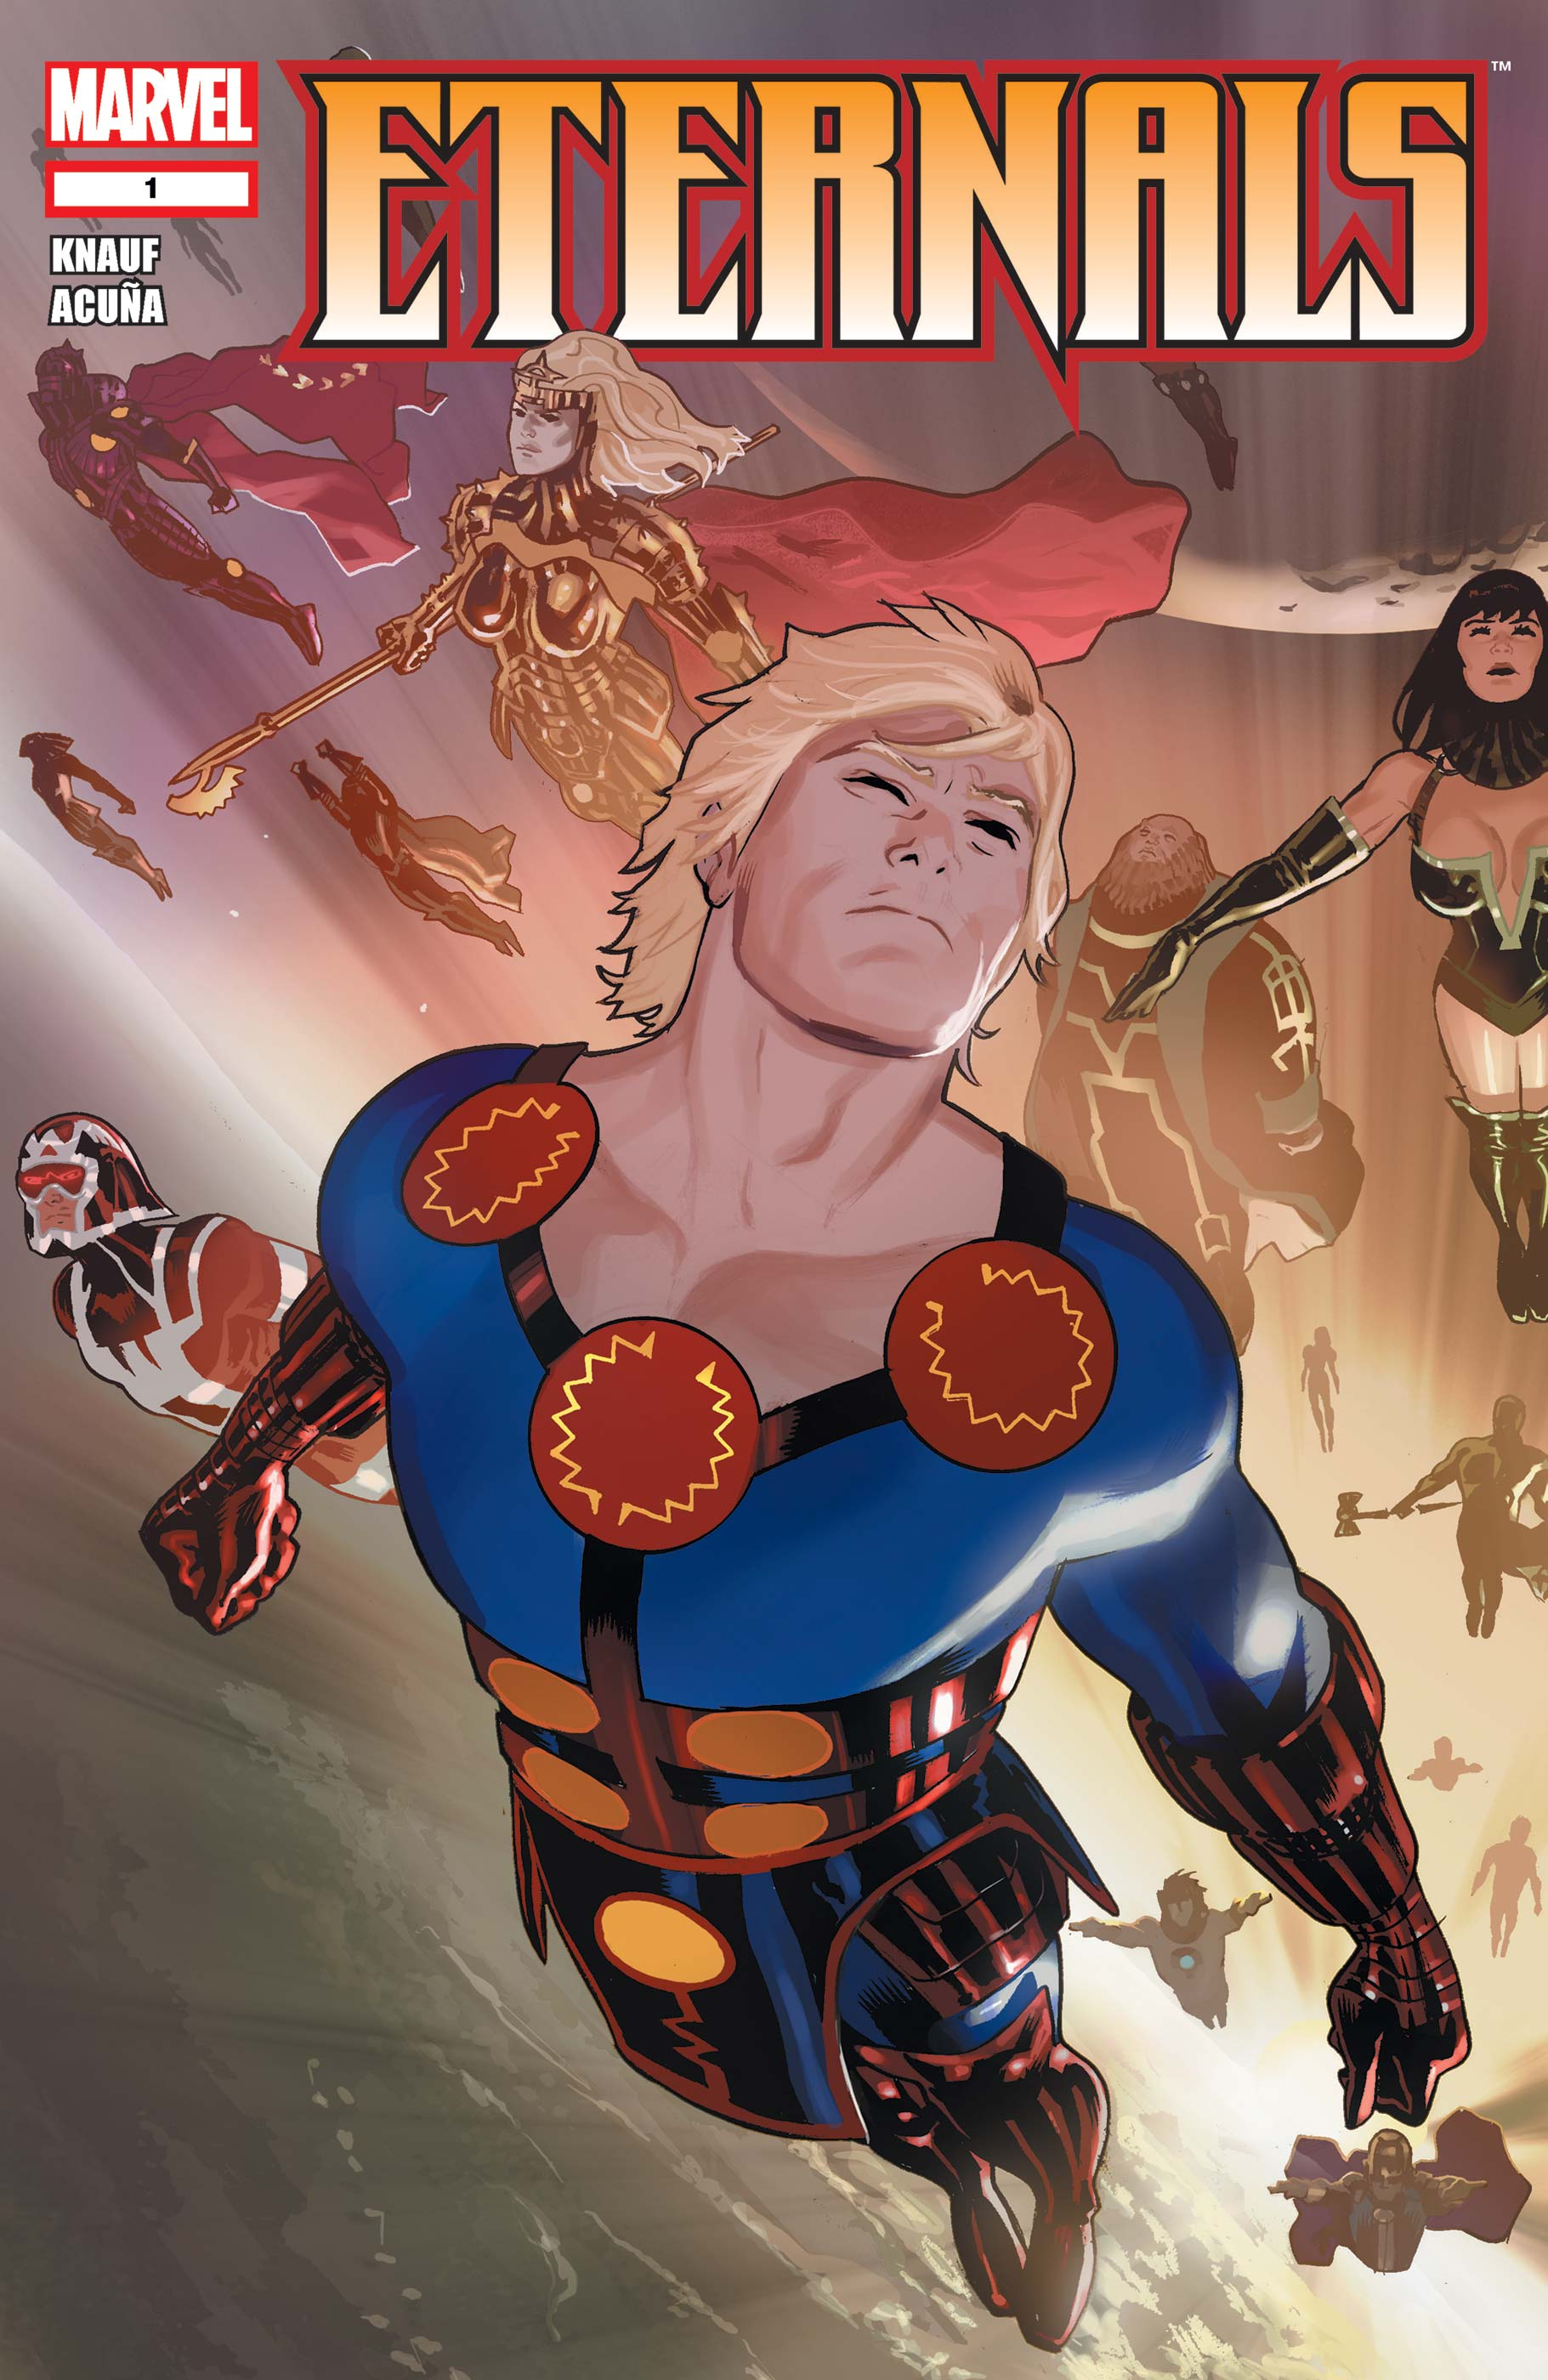 Marvels The Eternals Could Be the Weirdest Movie in the MCU